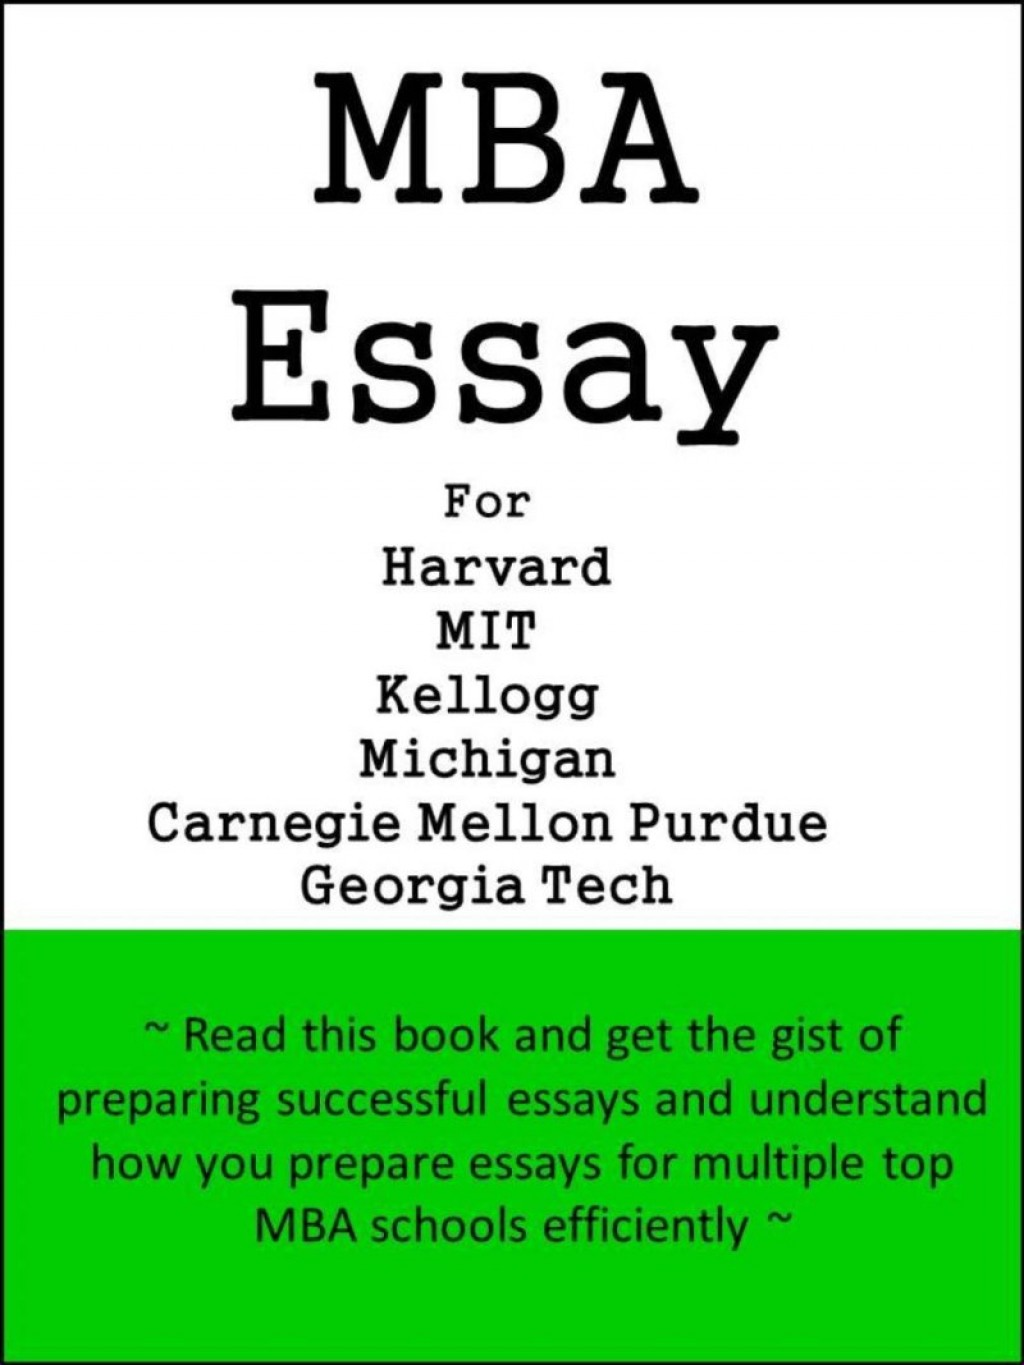 007 Kellogg Mba Essays Poemsrom Co For Harvard Mit Michigan Carnegie Mellon Purdue Georgia Tech 205 Questions Stunning Essay Business School Northwestern Analysis Large